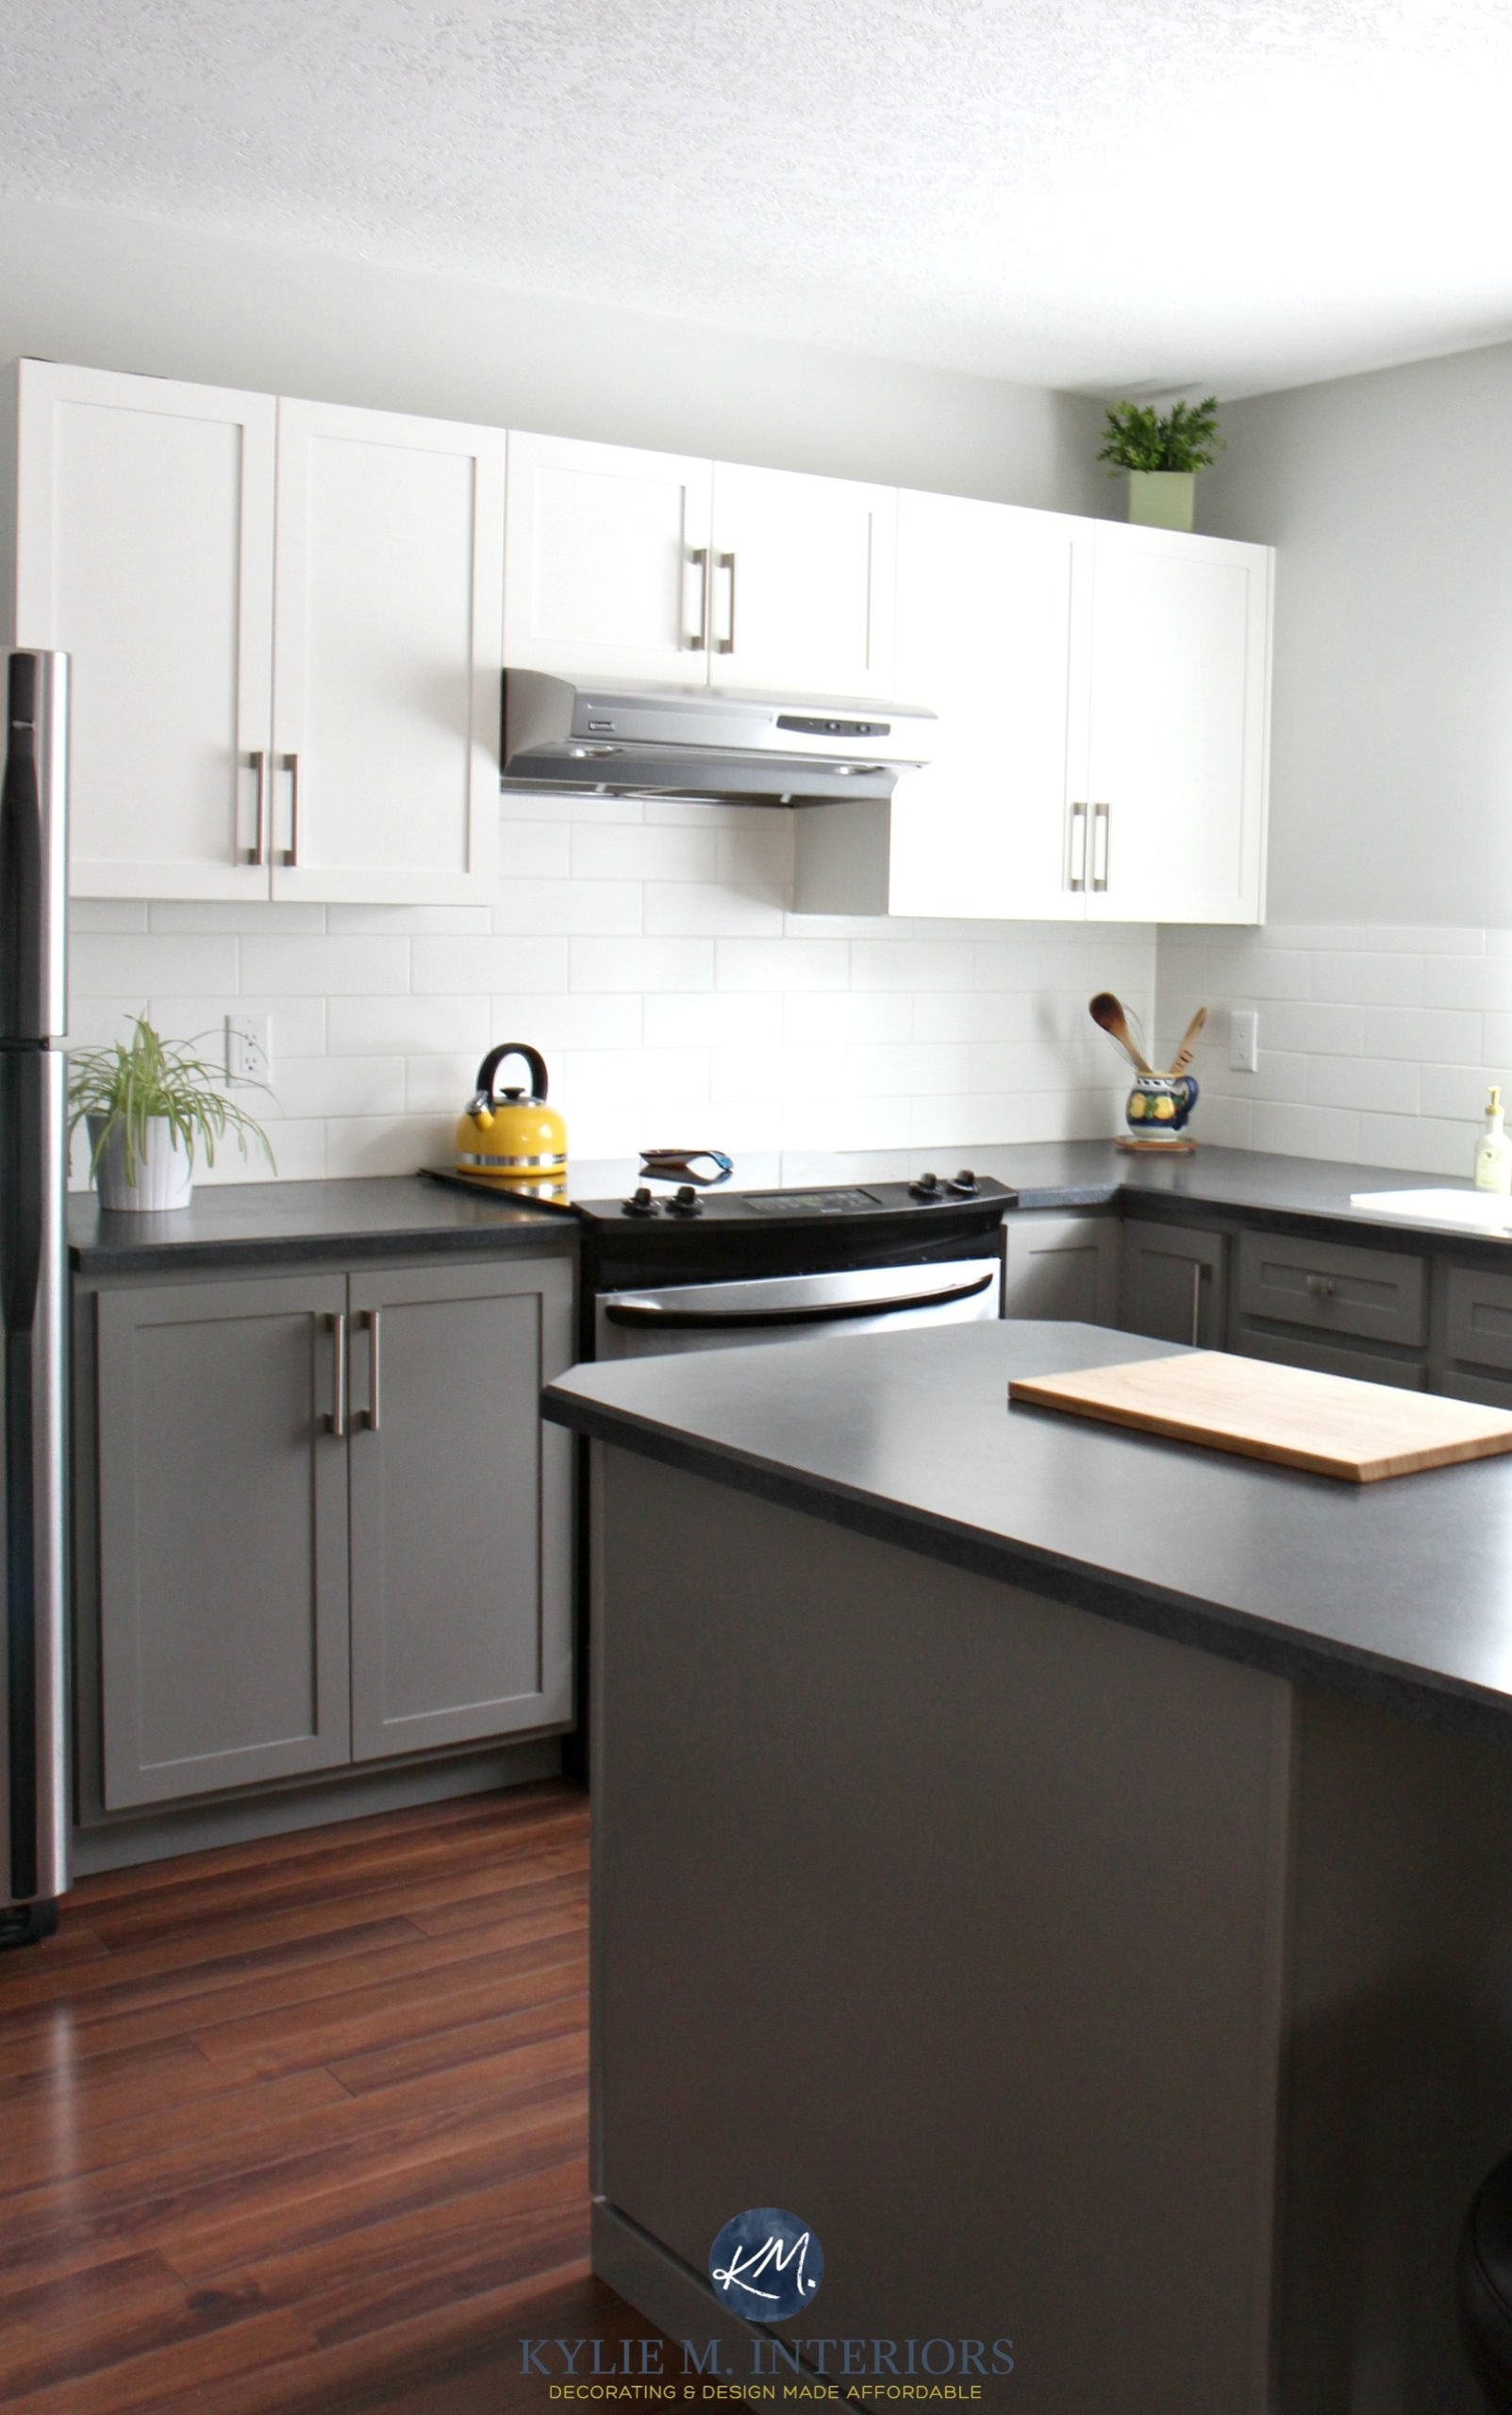 Painted kitchen cabinets with white and Benjamin Moore Chelsea Gray ...